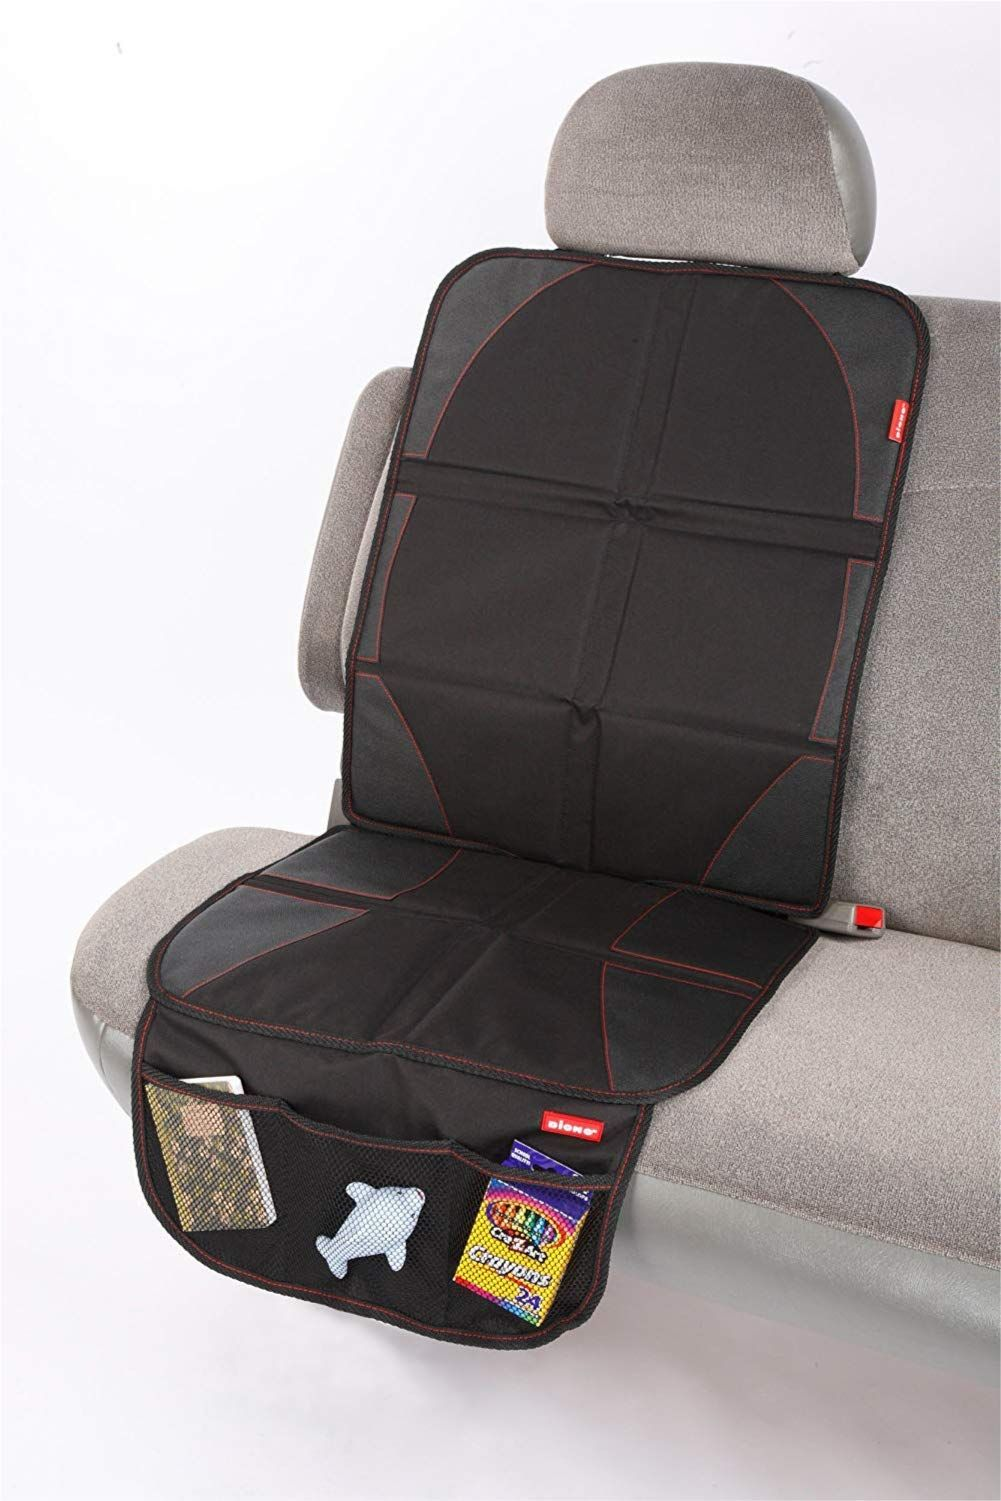 Diono Full Size Seat Univeral Protector Ultra Mat Protects Car Upholstery From Scratches Dents Wear And Tear Wat Child Car Seat Child Safety Seat Car Seats